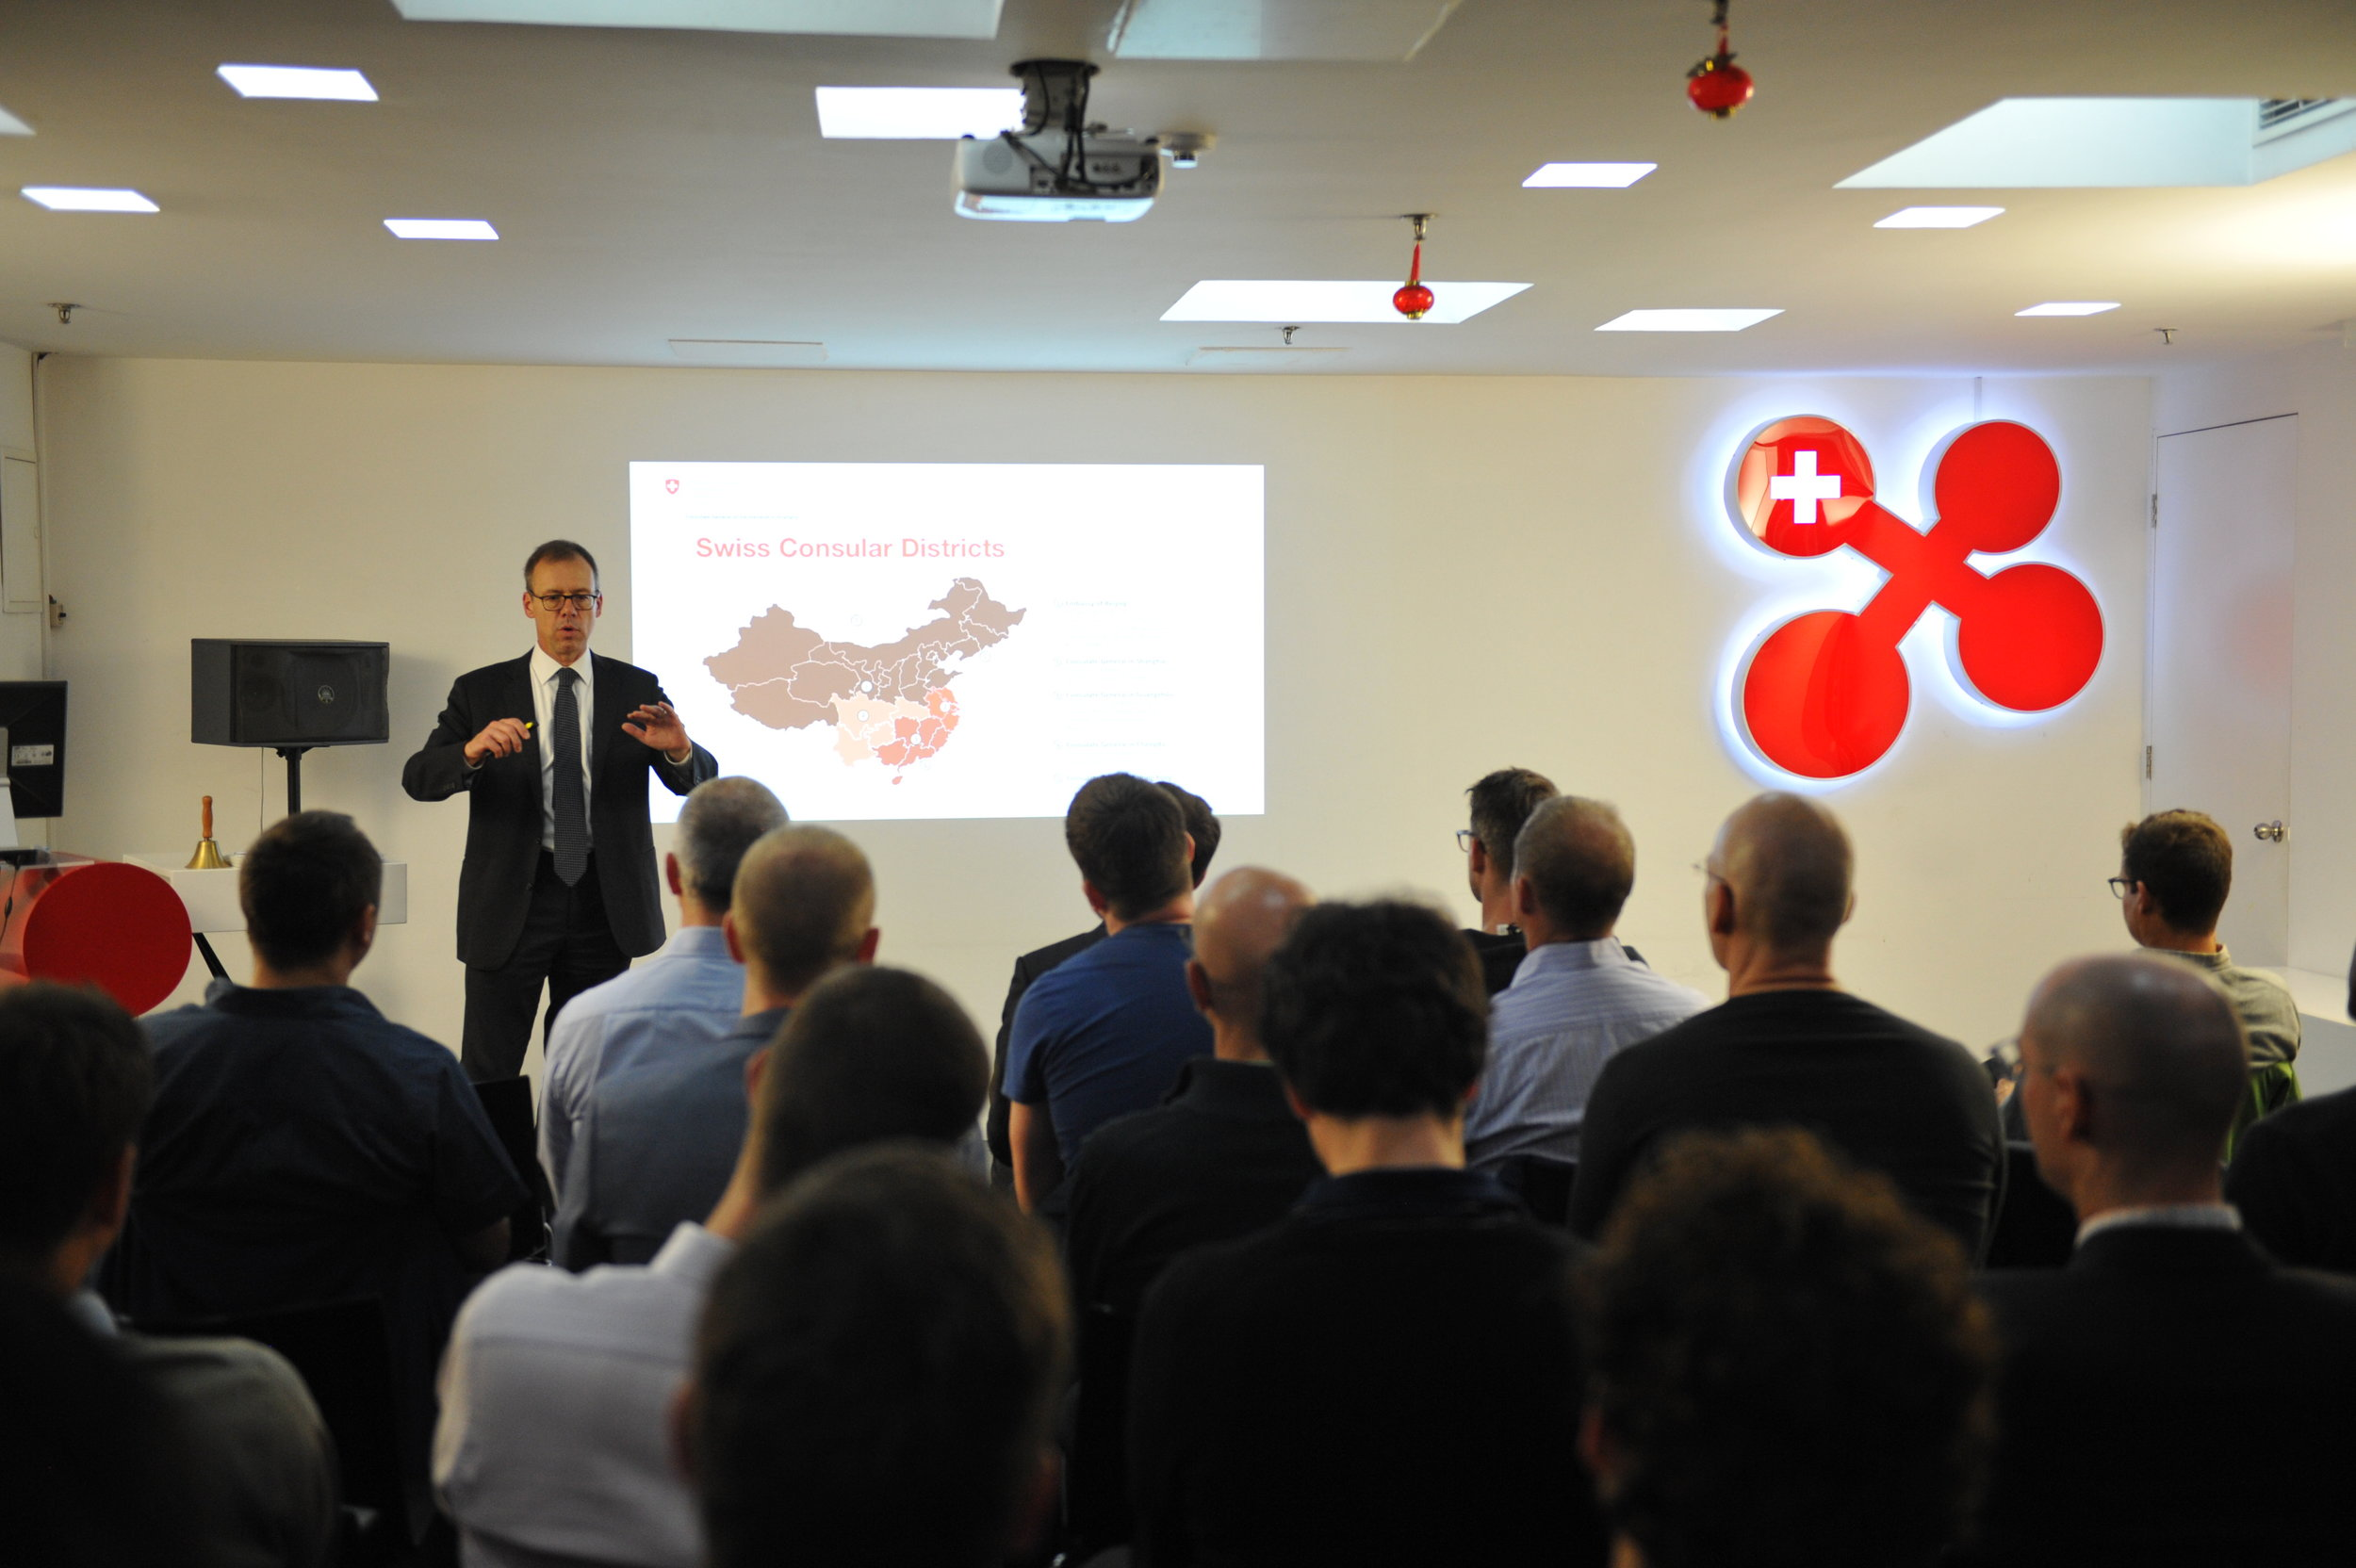 Mr. Olivier Zehnder, Consul General of Switzerland in Shanghai introduced to Sino-Swiss relations and Swiss presence in China and Shanghai.